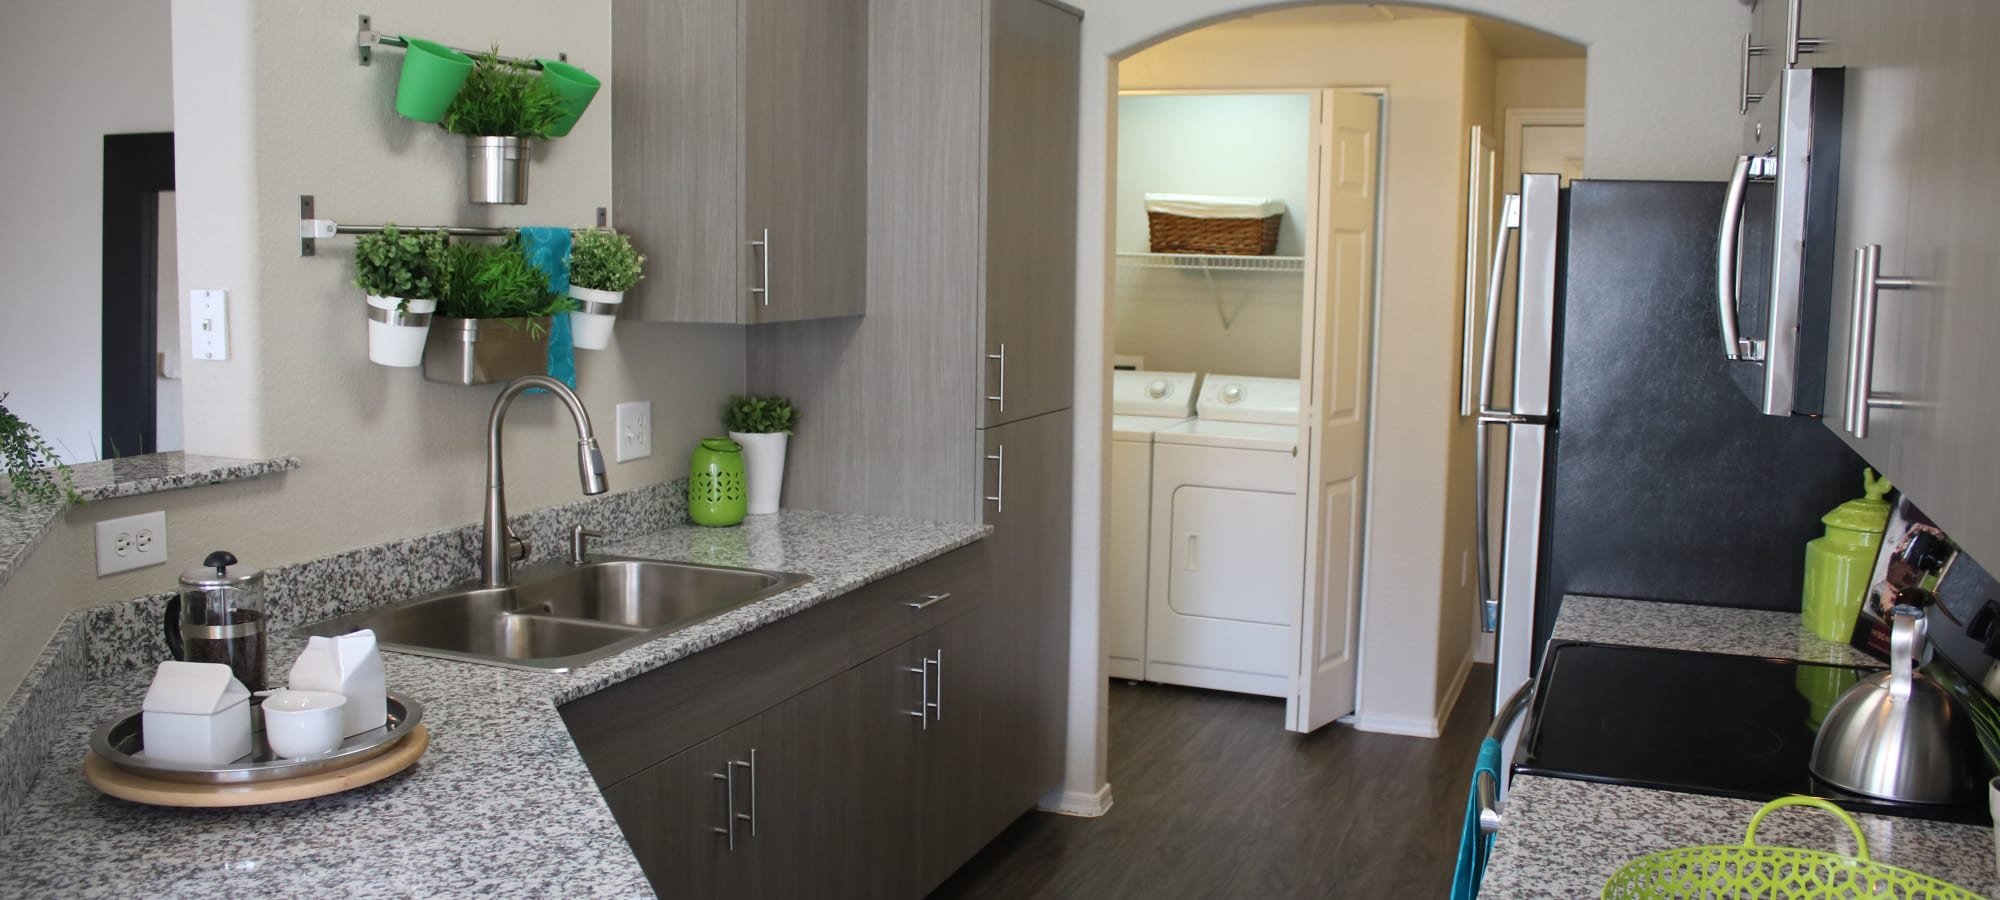 Stainless-steel appliances in the kitchen of a model home at Mira Santi in Chandler, Arizona